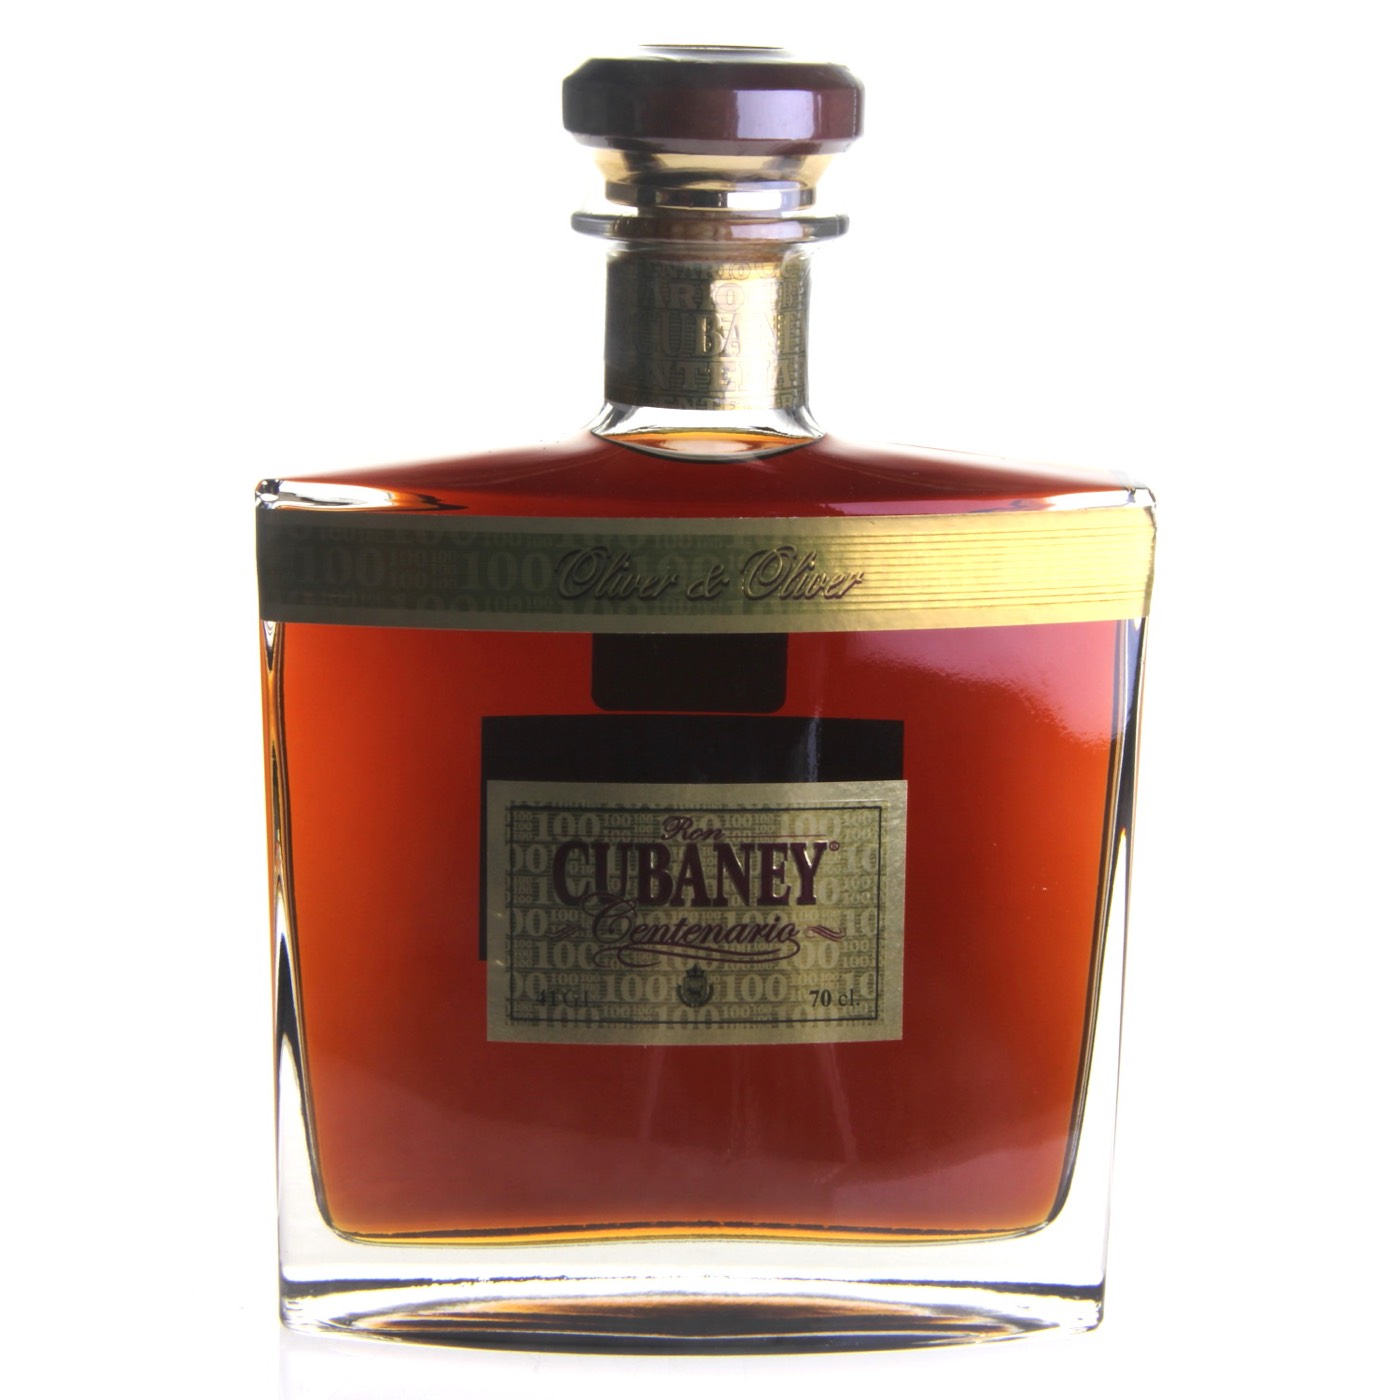 Bottle image of Cubaney Gran Reserve Centenario